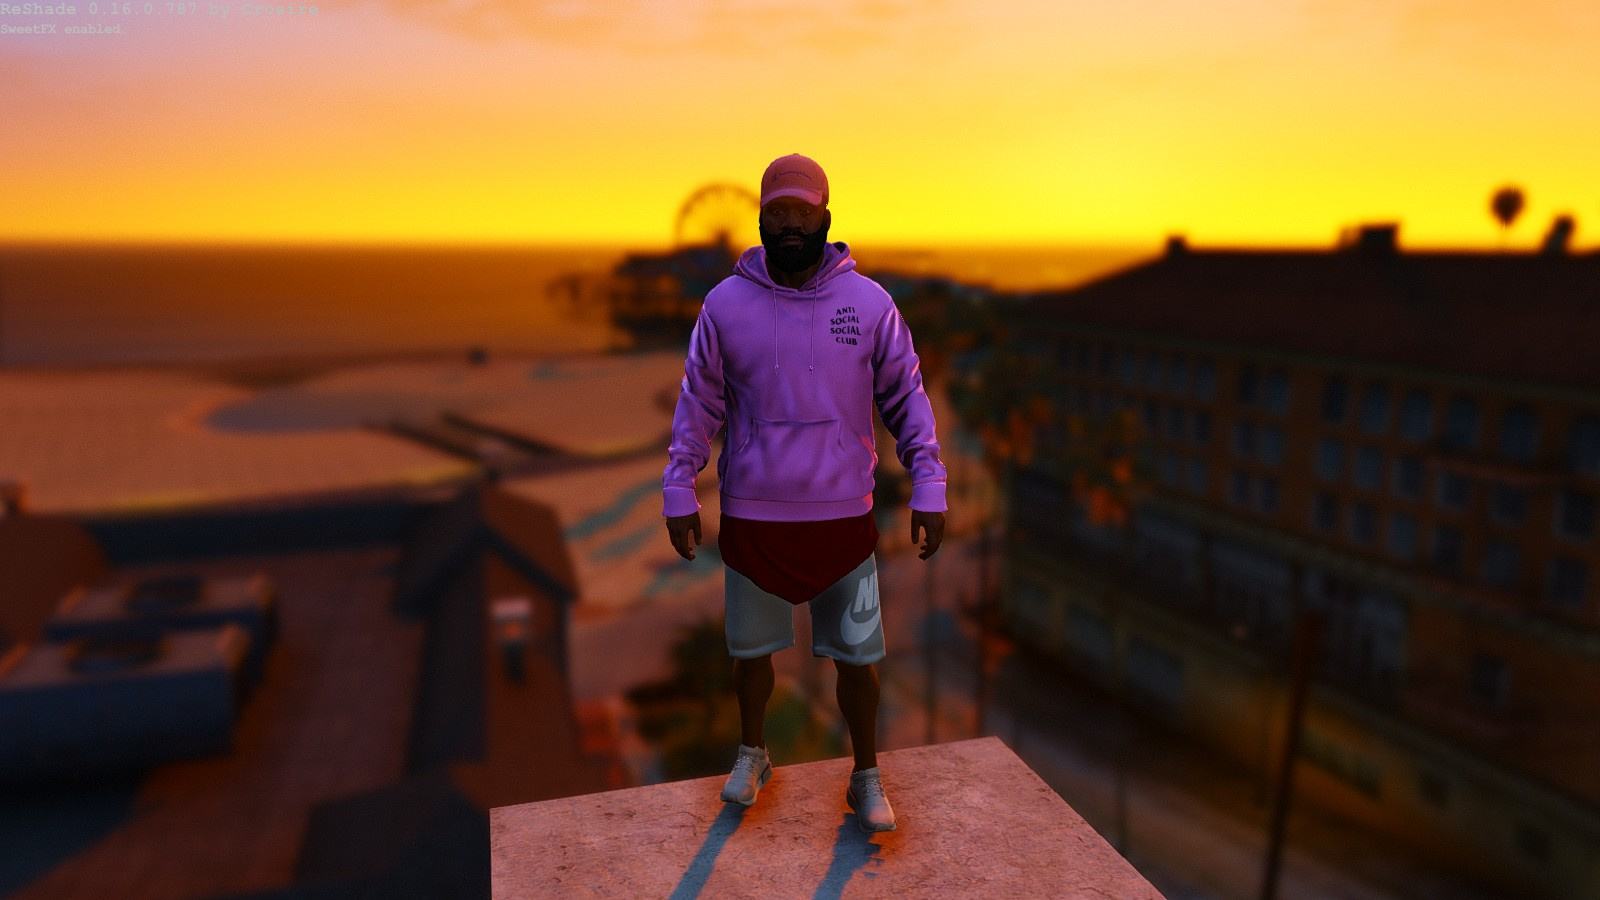 how to get social club on gta 5